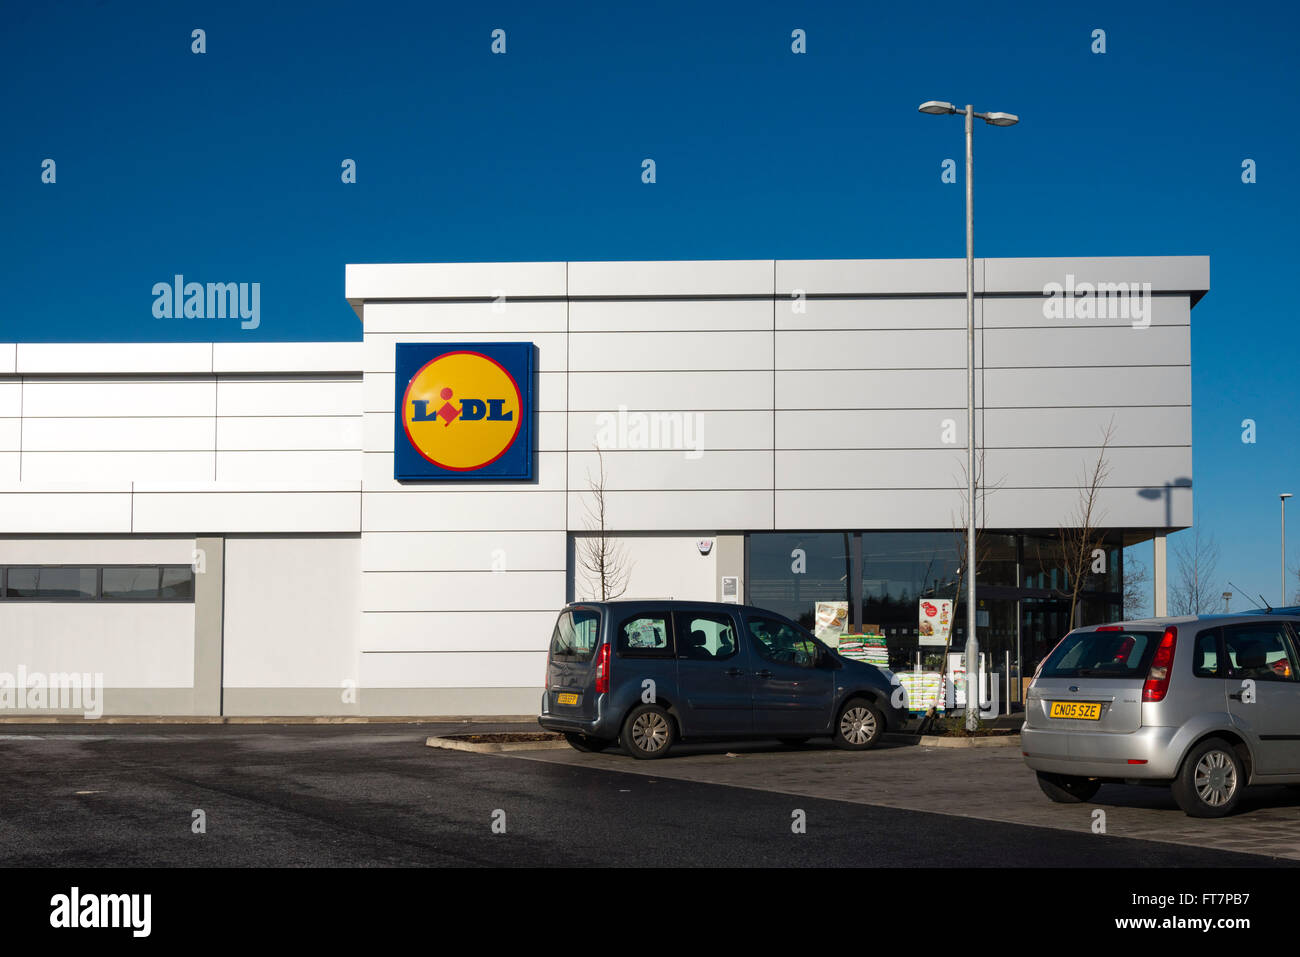 Lidl supermarket, UK. - Stock Image